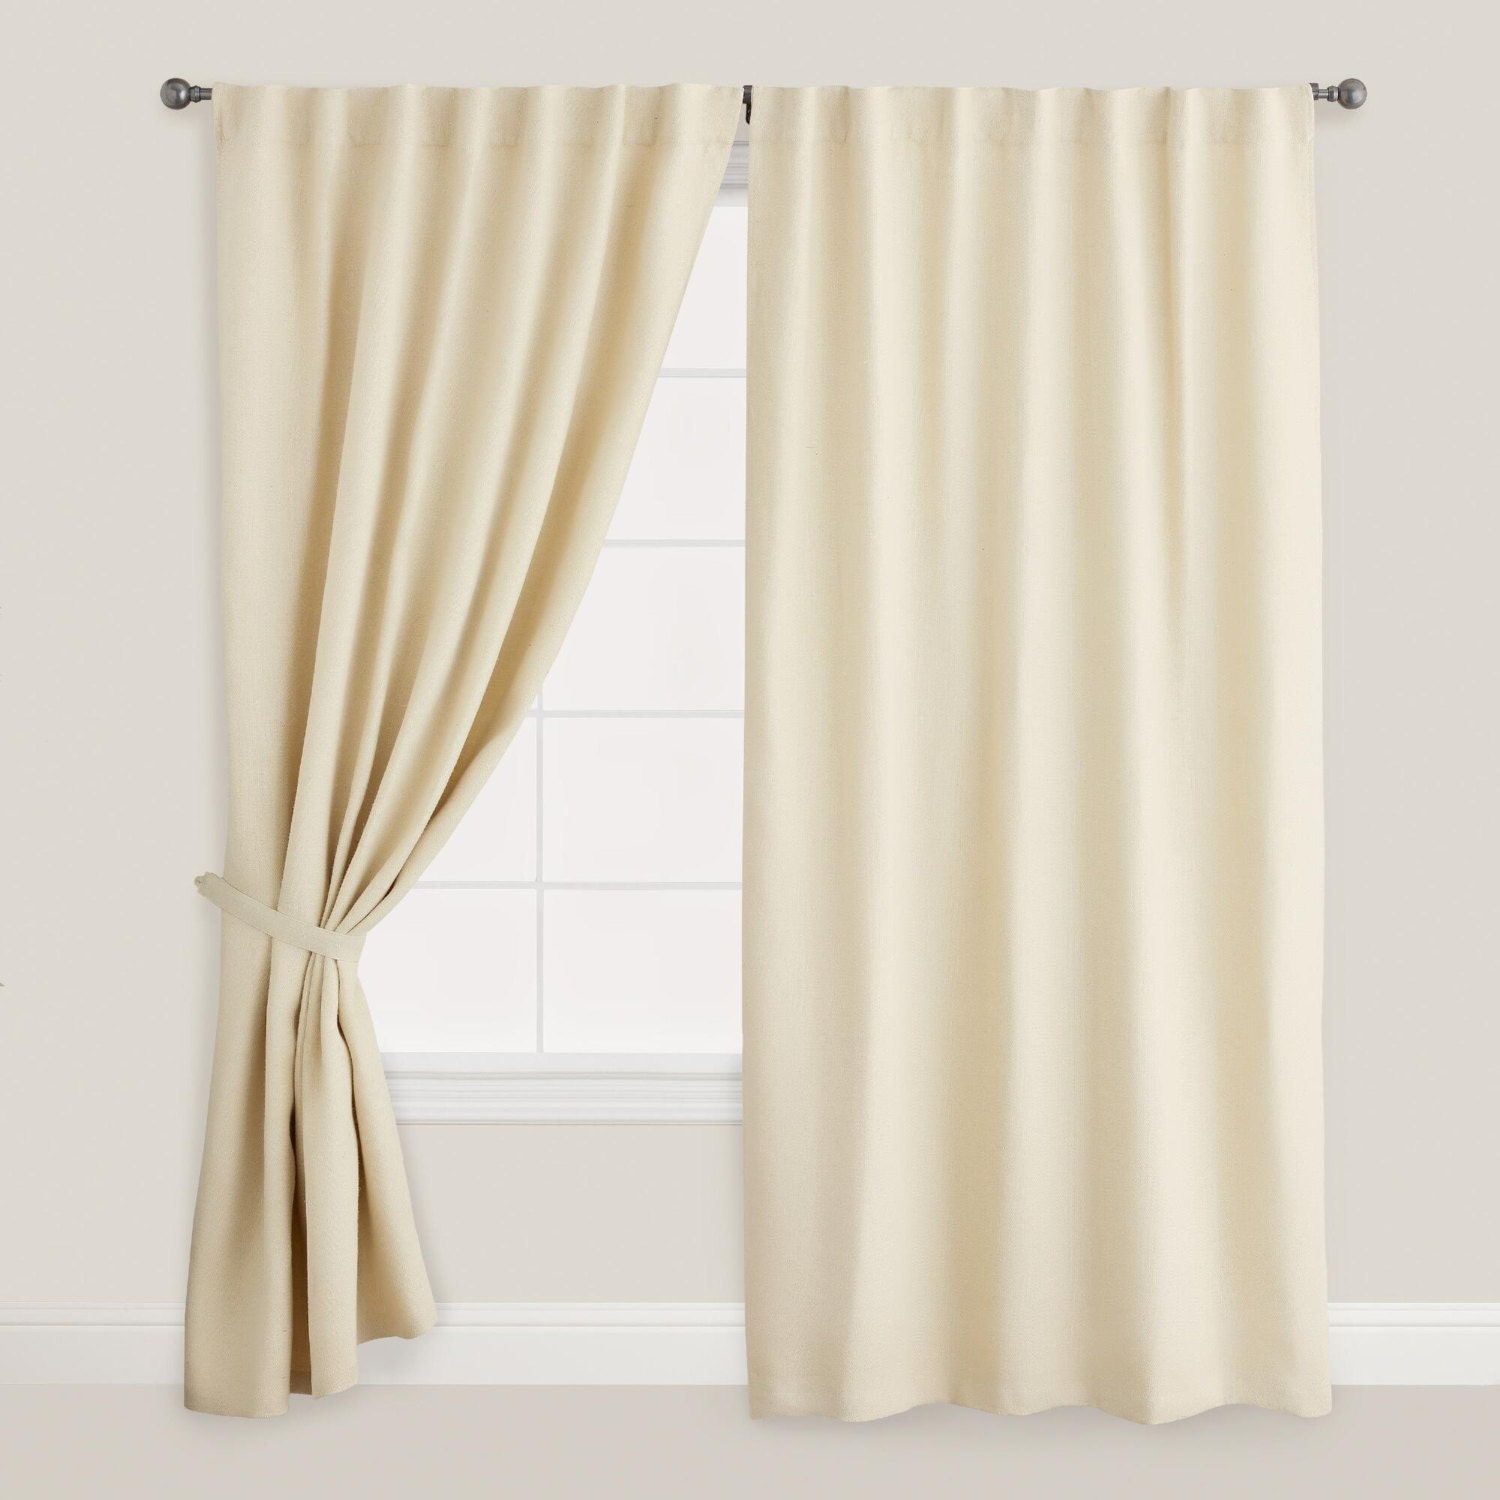 White velvet custom made curtains all size by tailor2u on etsy